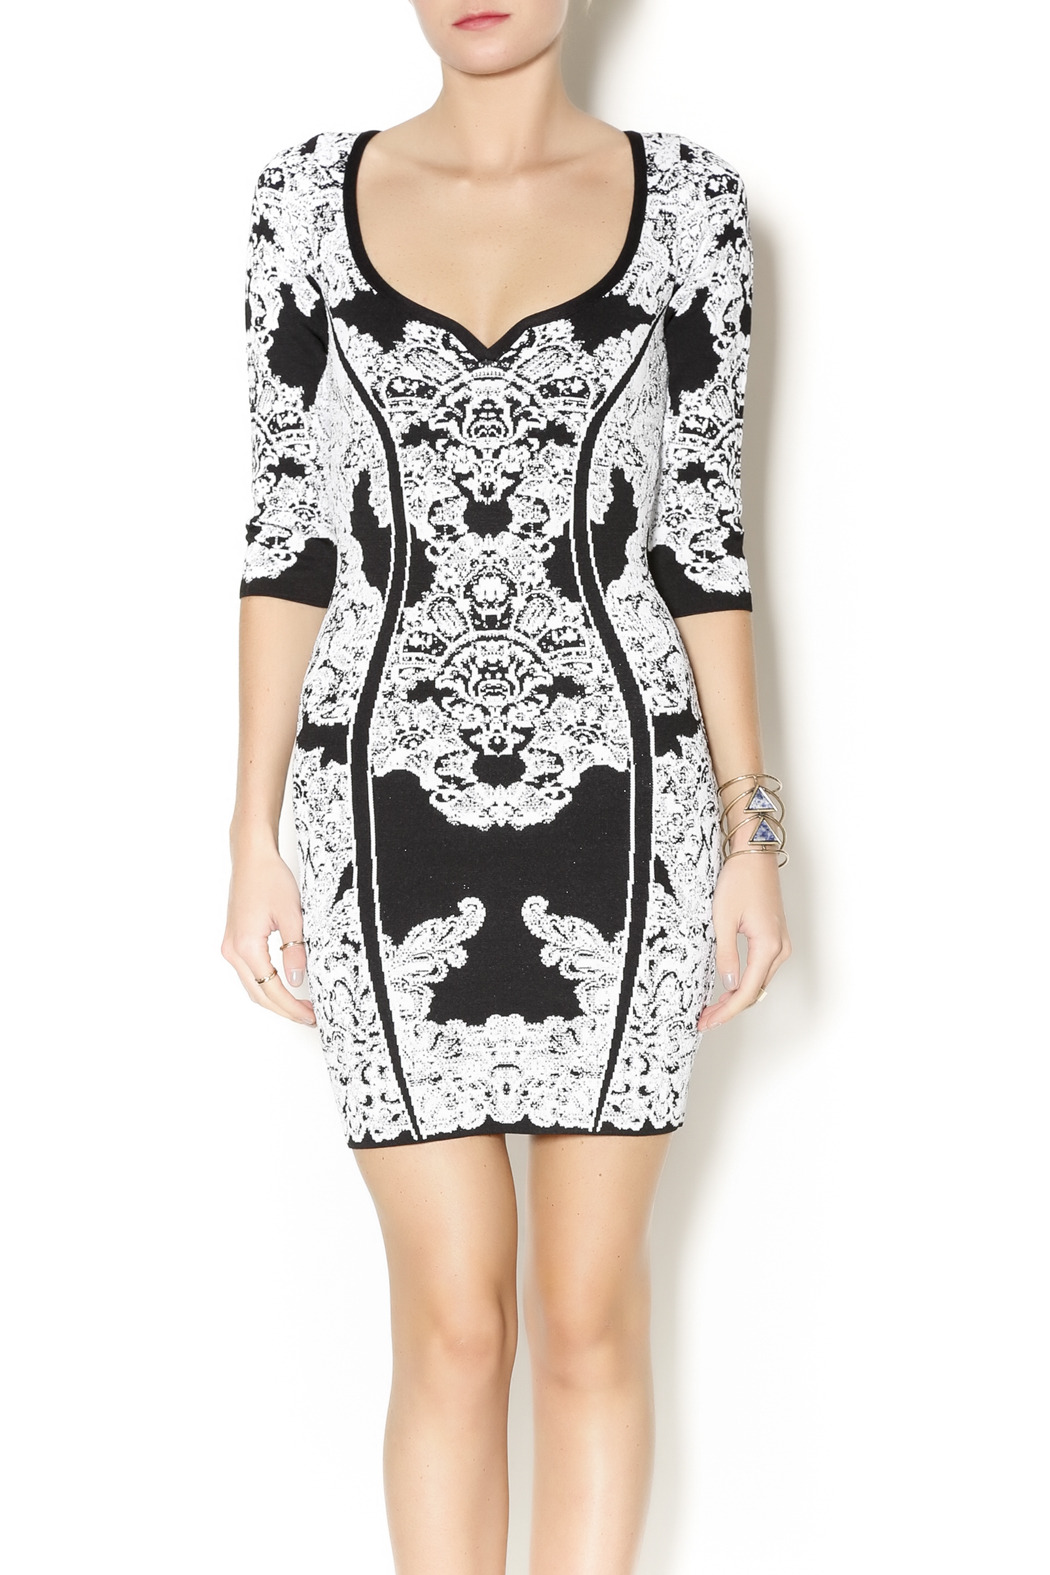 Wow Couture Damask Body Con Dress - Front Cropped Image